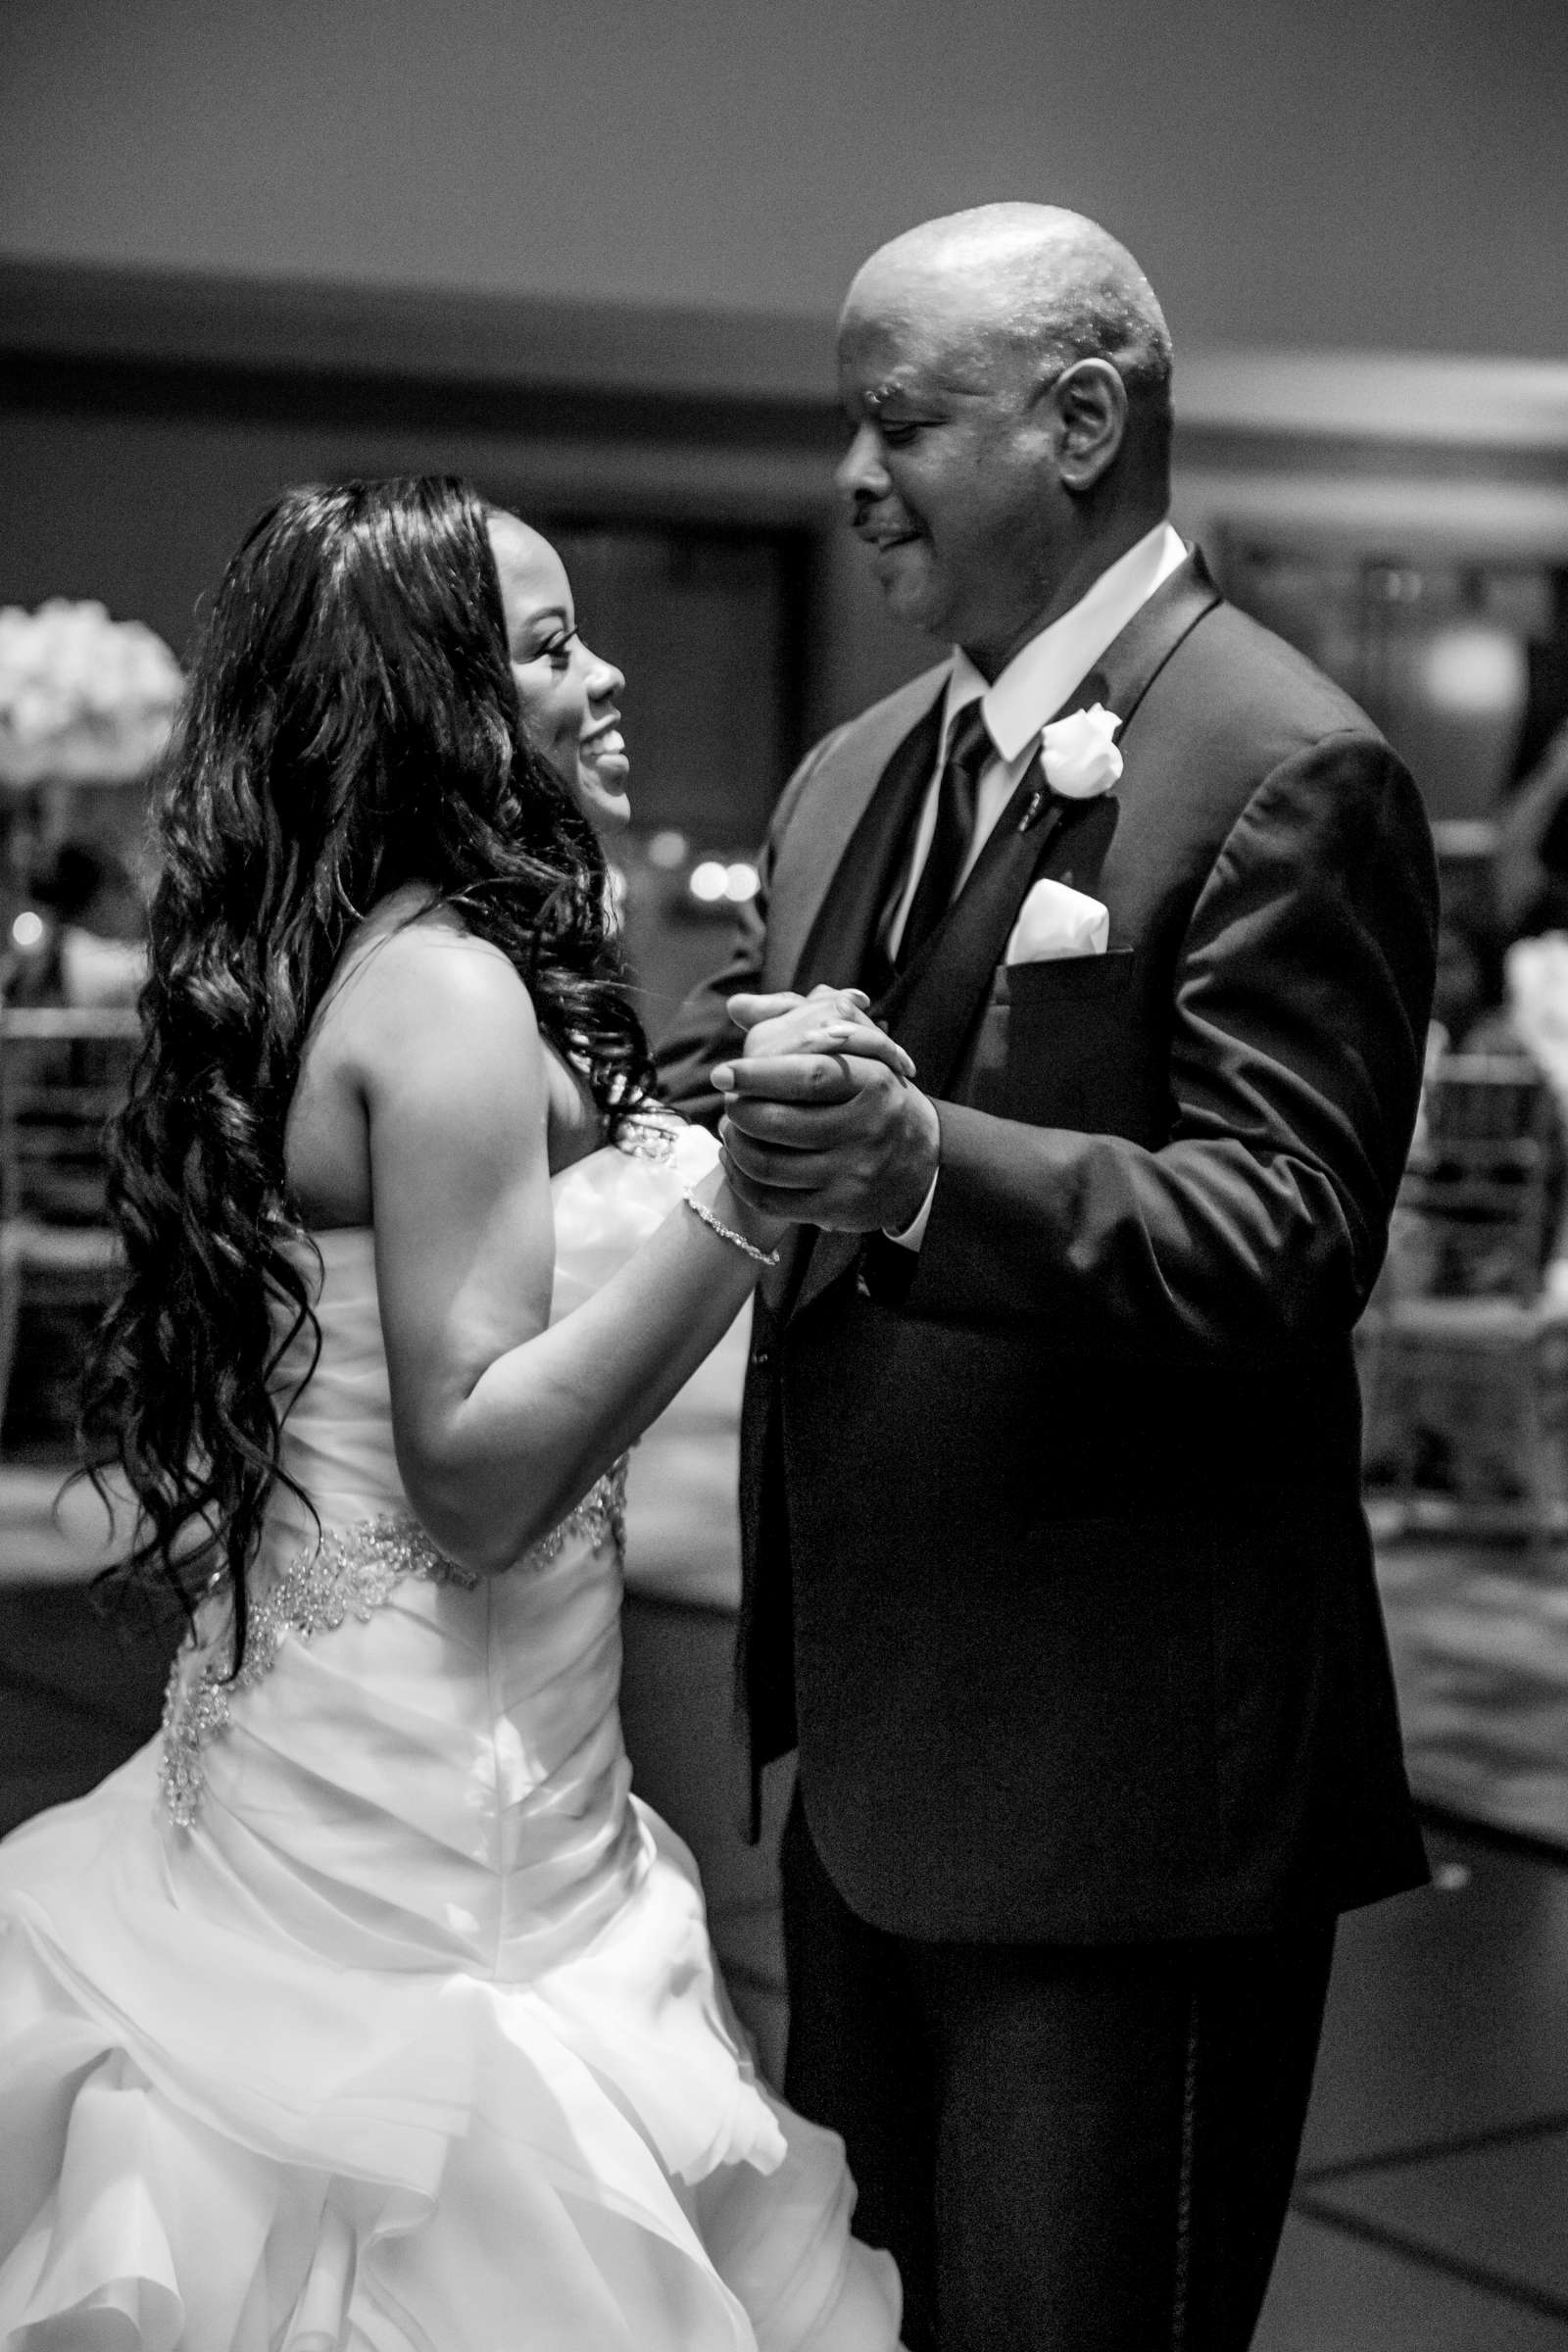 Coronado Community Center Wedding coordinated by First Comes Love Weddings & Events, Nikia and Charles Wedding Photo #80 by True Photography